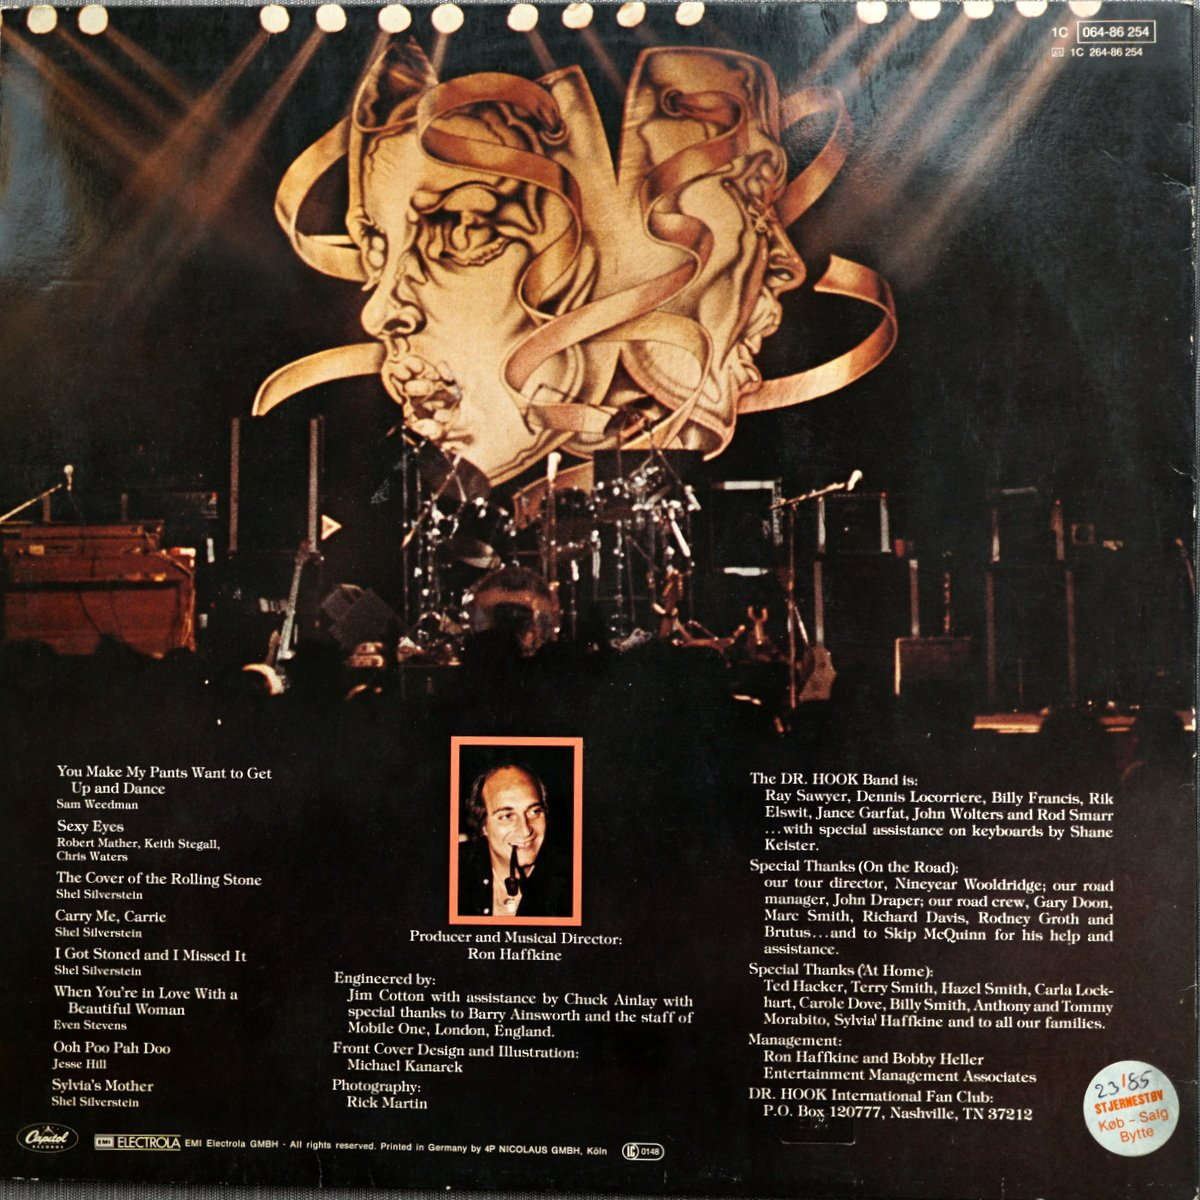 LP - 1C 064-86 254 - Dr Hook Live in the UK - Germany - 1981 - 2